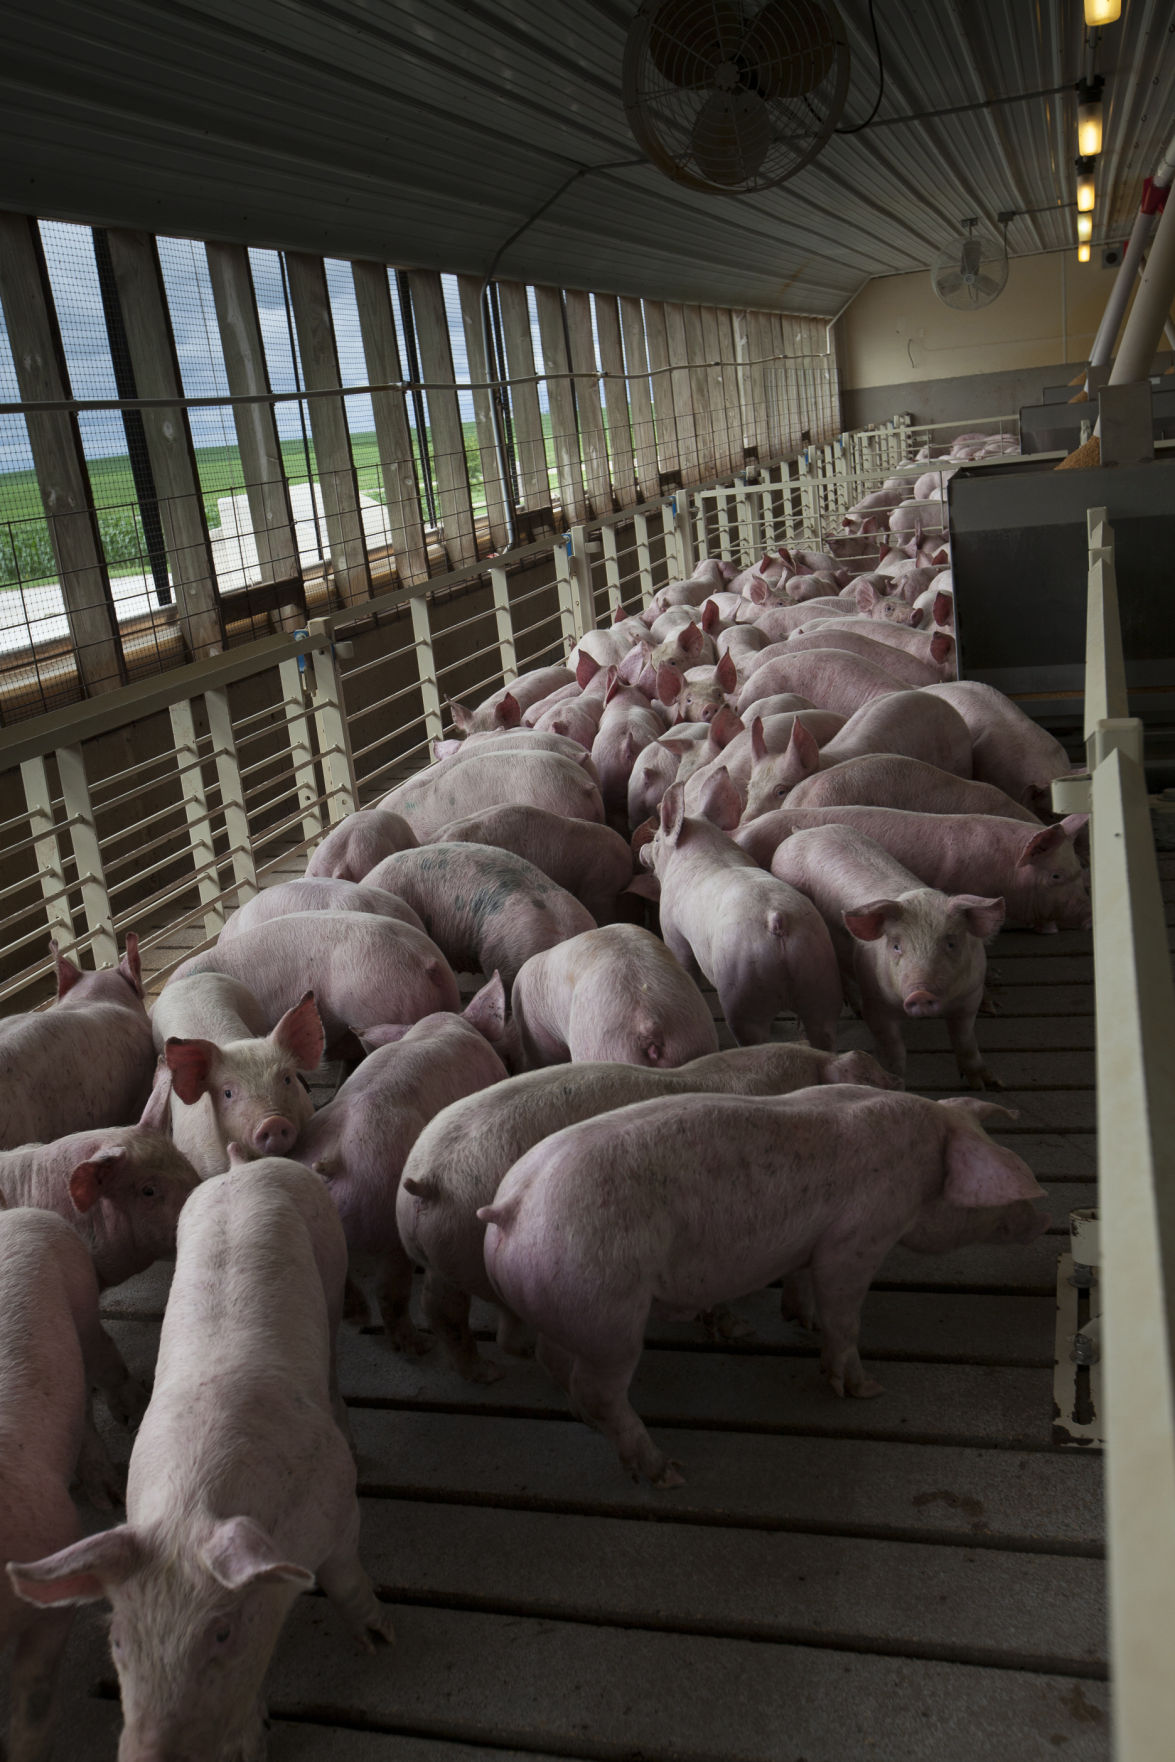 Hog producers care for the land jennifer carrico hpj hogs publicscrutiny Choice Image